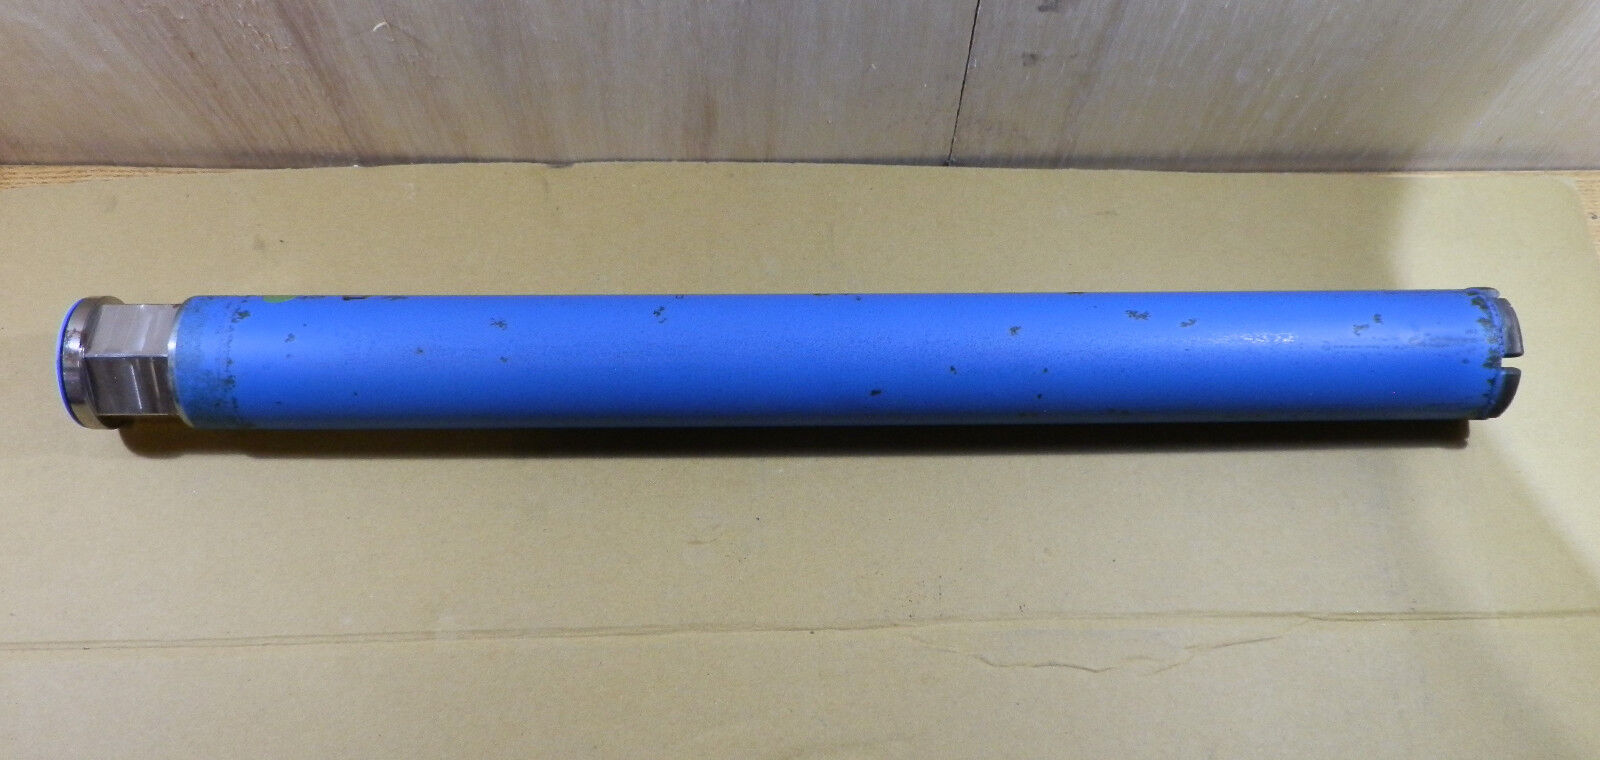 Tyrolit CDM-C3 Wet Diamond Core Drilling Bit 52mm x 450mm x 1 1/4